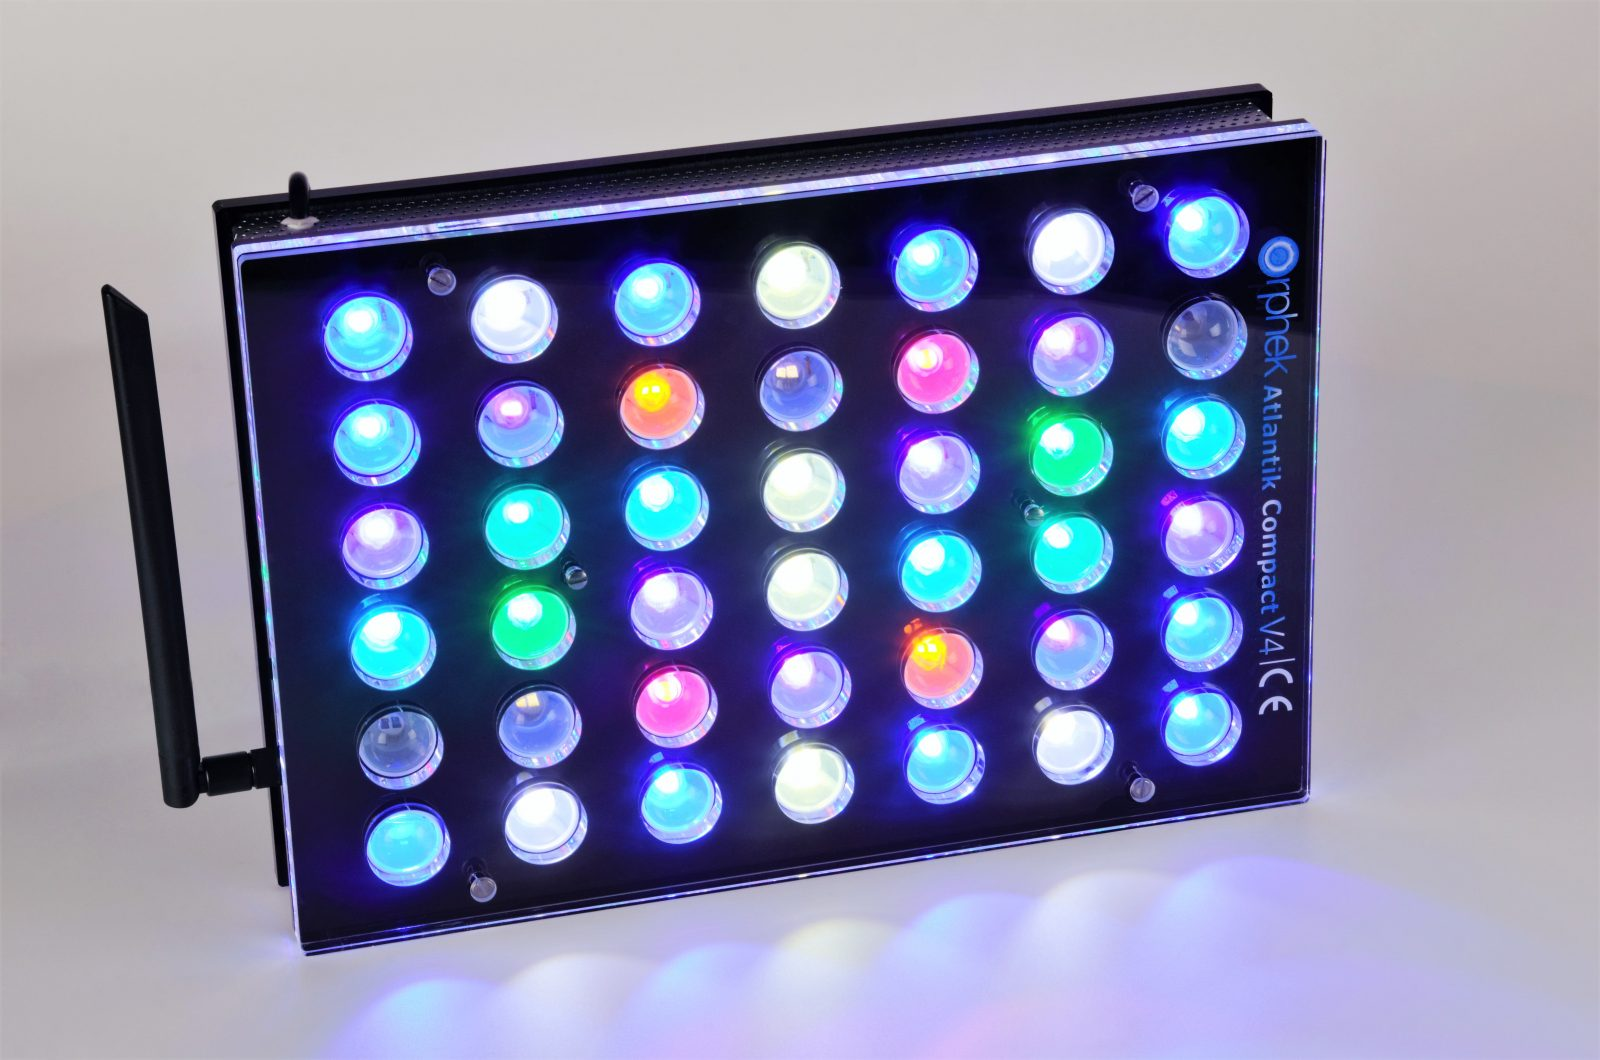 Orphek-Aquarium-LED-Beleuchtung-Atlantik -Compact-V4-light -on - Kanal 1 + 2 + 3 + 4